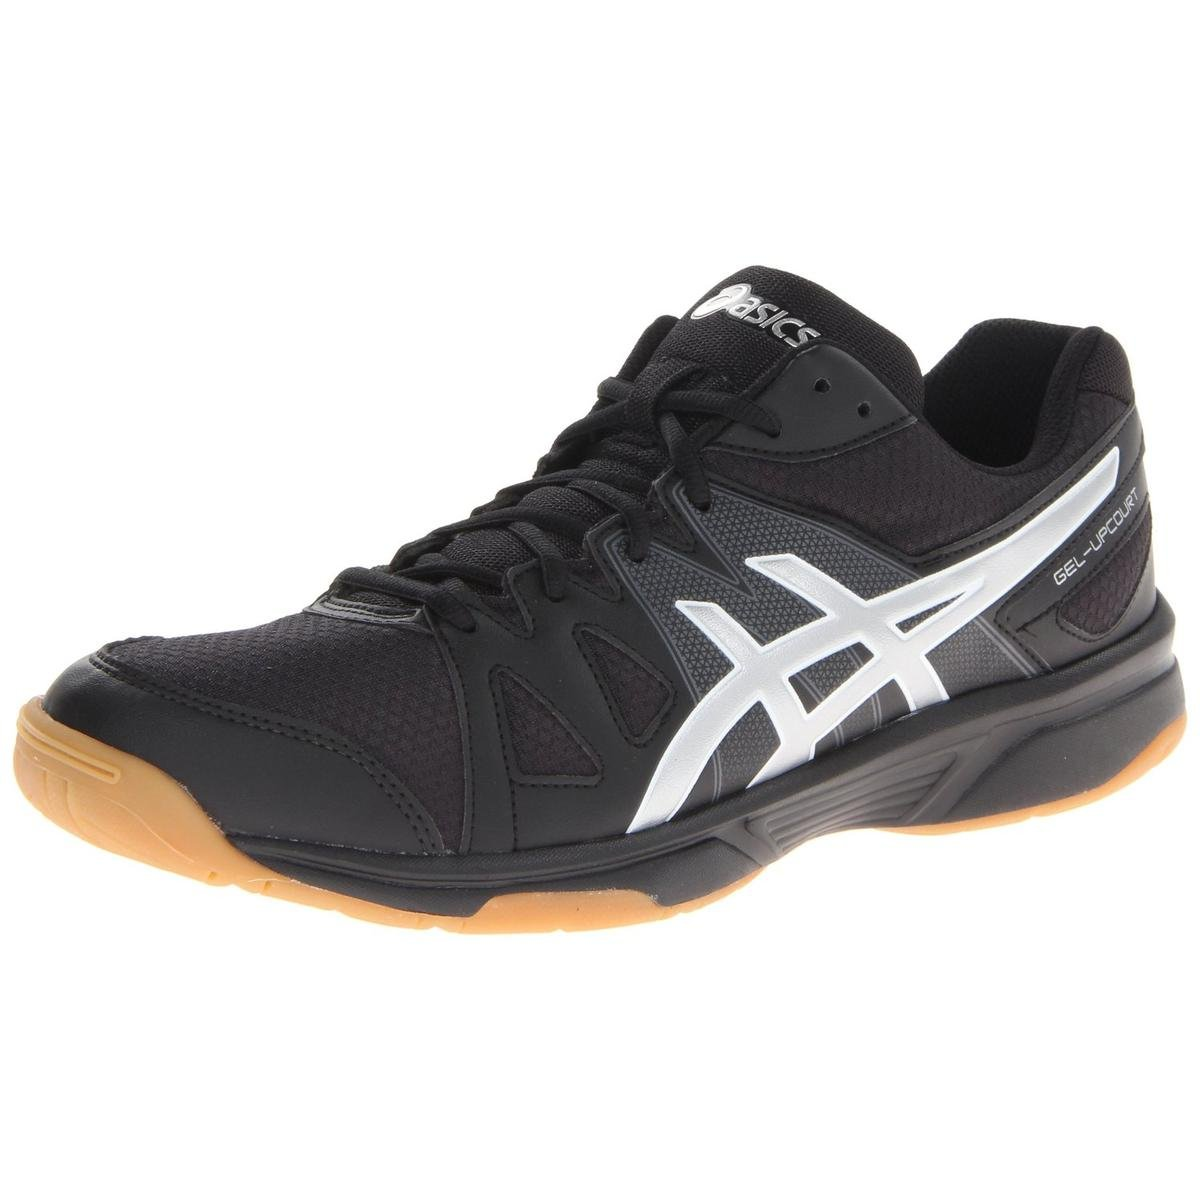 ASICS Men's Gel Upcourt Volley Ball Shoe,Black/Silver,7 M US